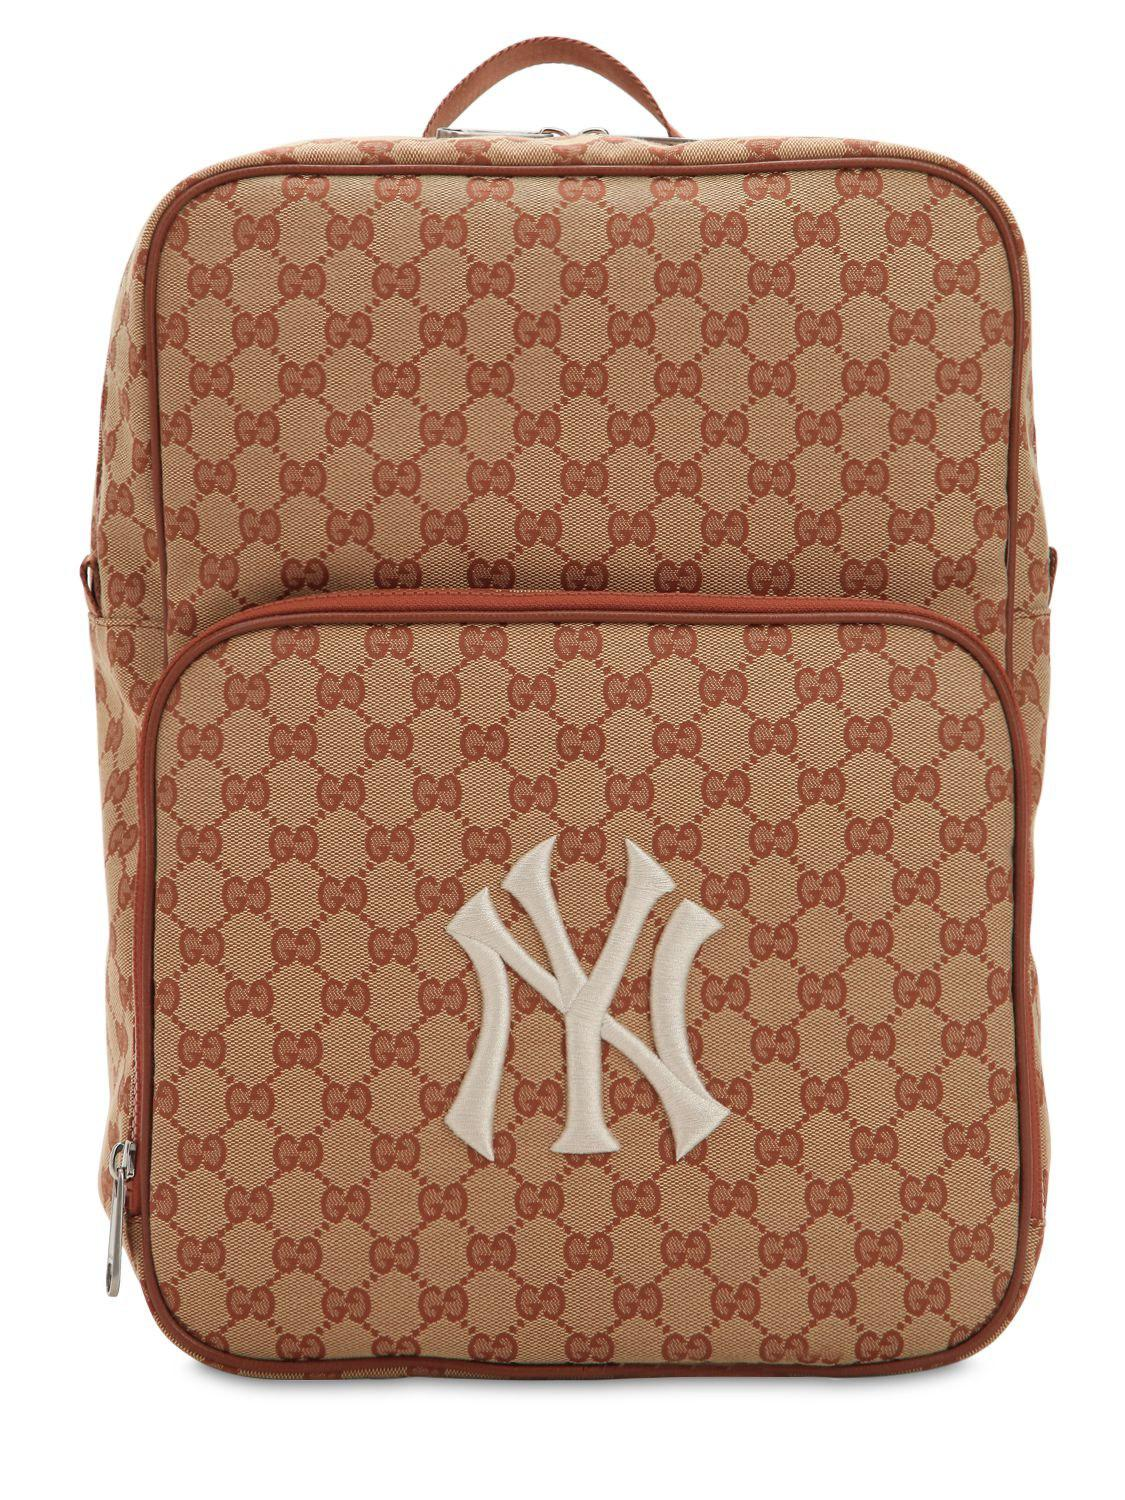 Lyst - Gucci Original Gg Supreme Logo Backpack in Natural for Men 4ef9913cc4